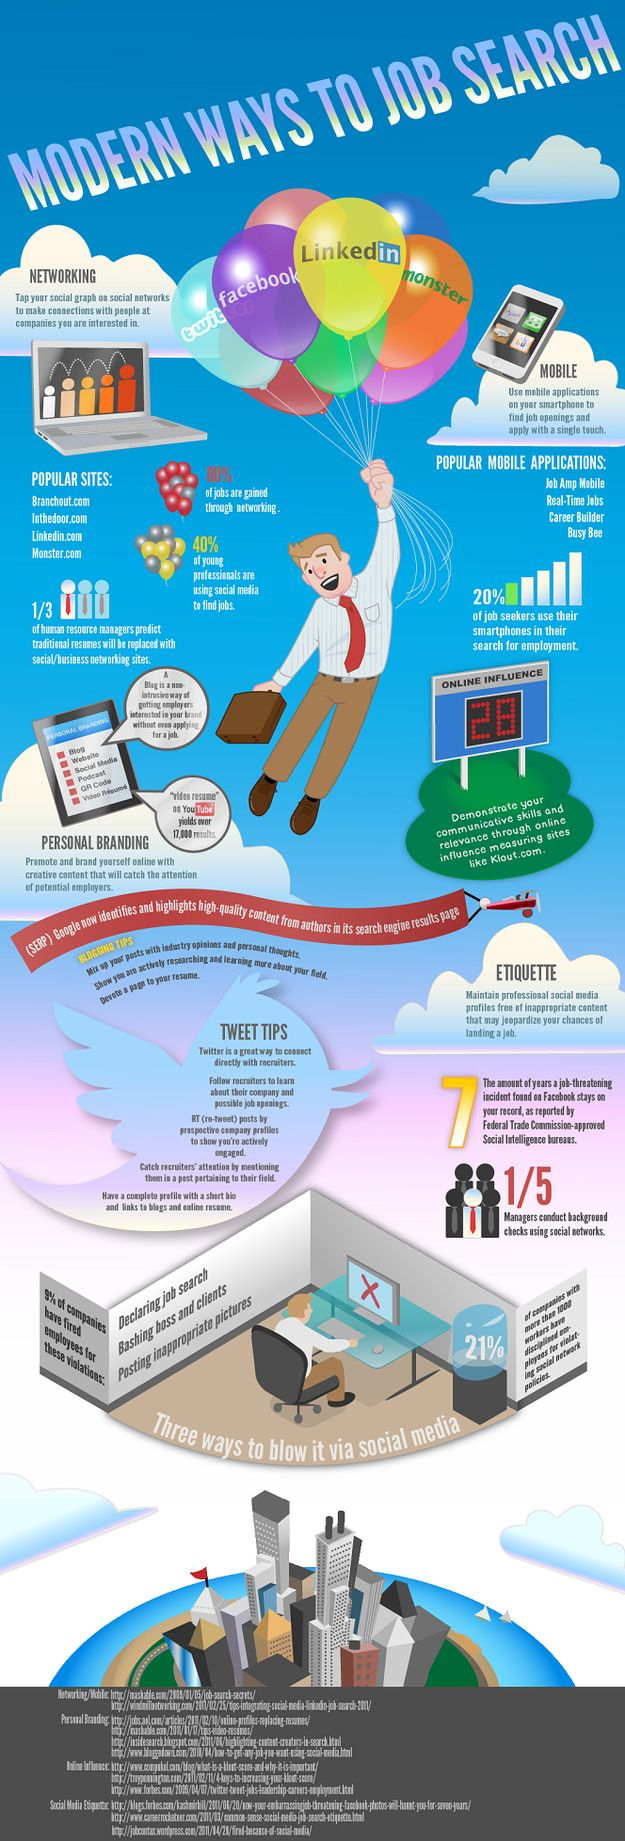 Modern Ways to Job Search [infographic]